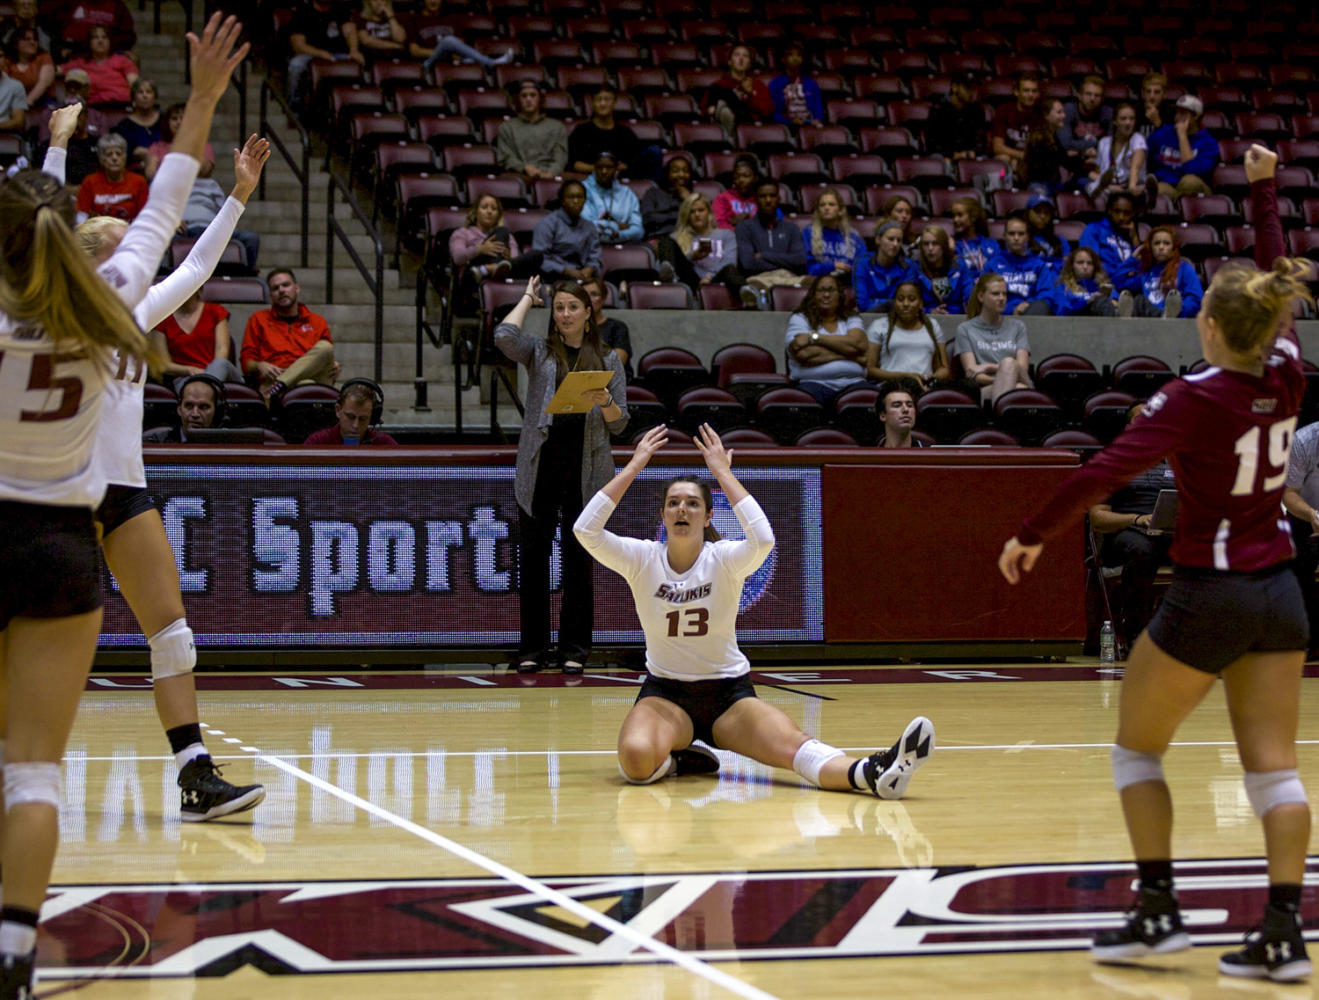 Freshman setter Rachel Maguire, 13, reacts in celebration with her teammates after scoring a point Tuesday, Sept. 12, 2017, during the Saluki's home game at SIU Arena. The Salukis beat the Redhawks in the fifth set, 15-13. (Mary Newman | @MaryNewmanDE)